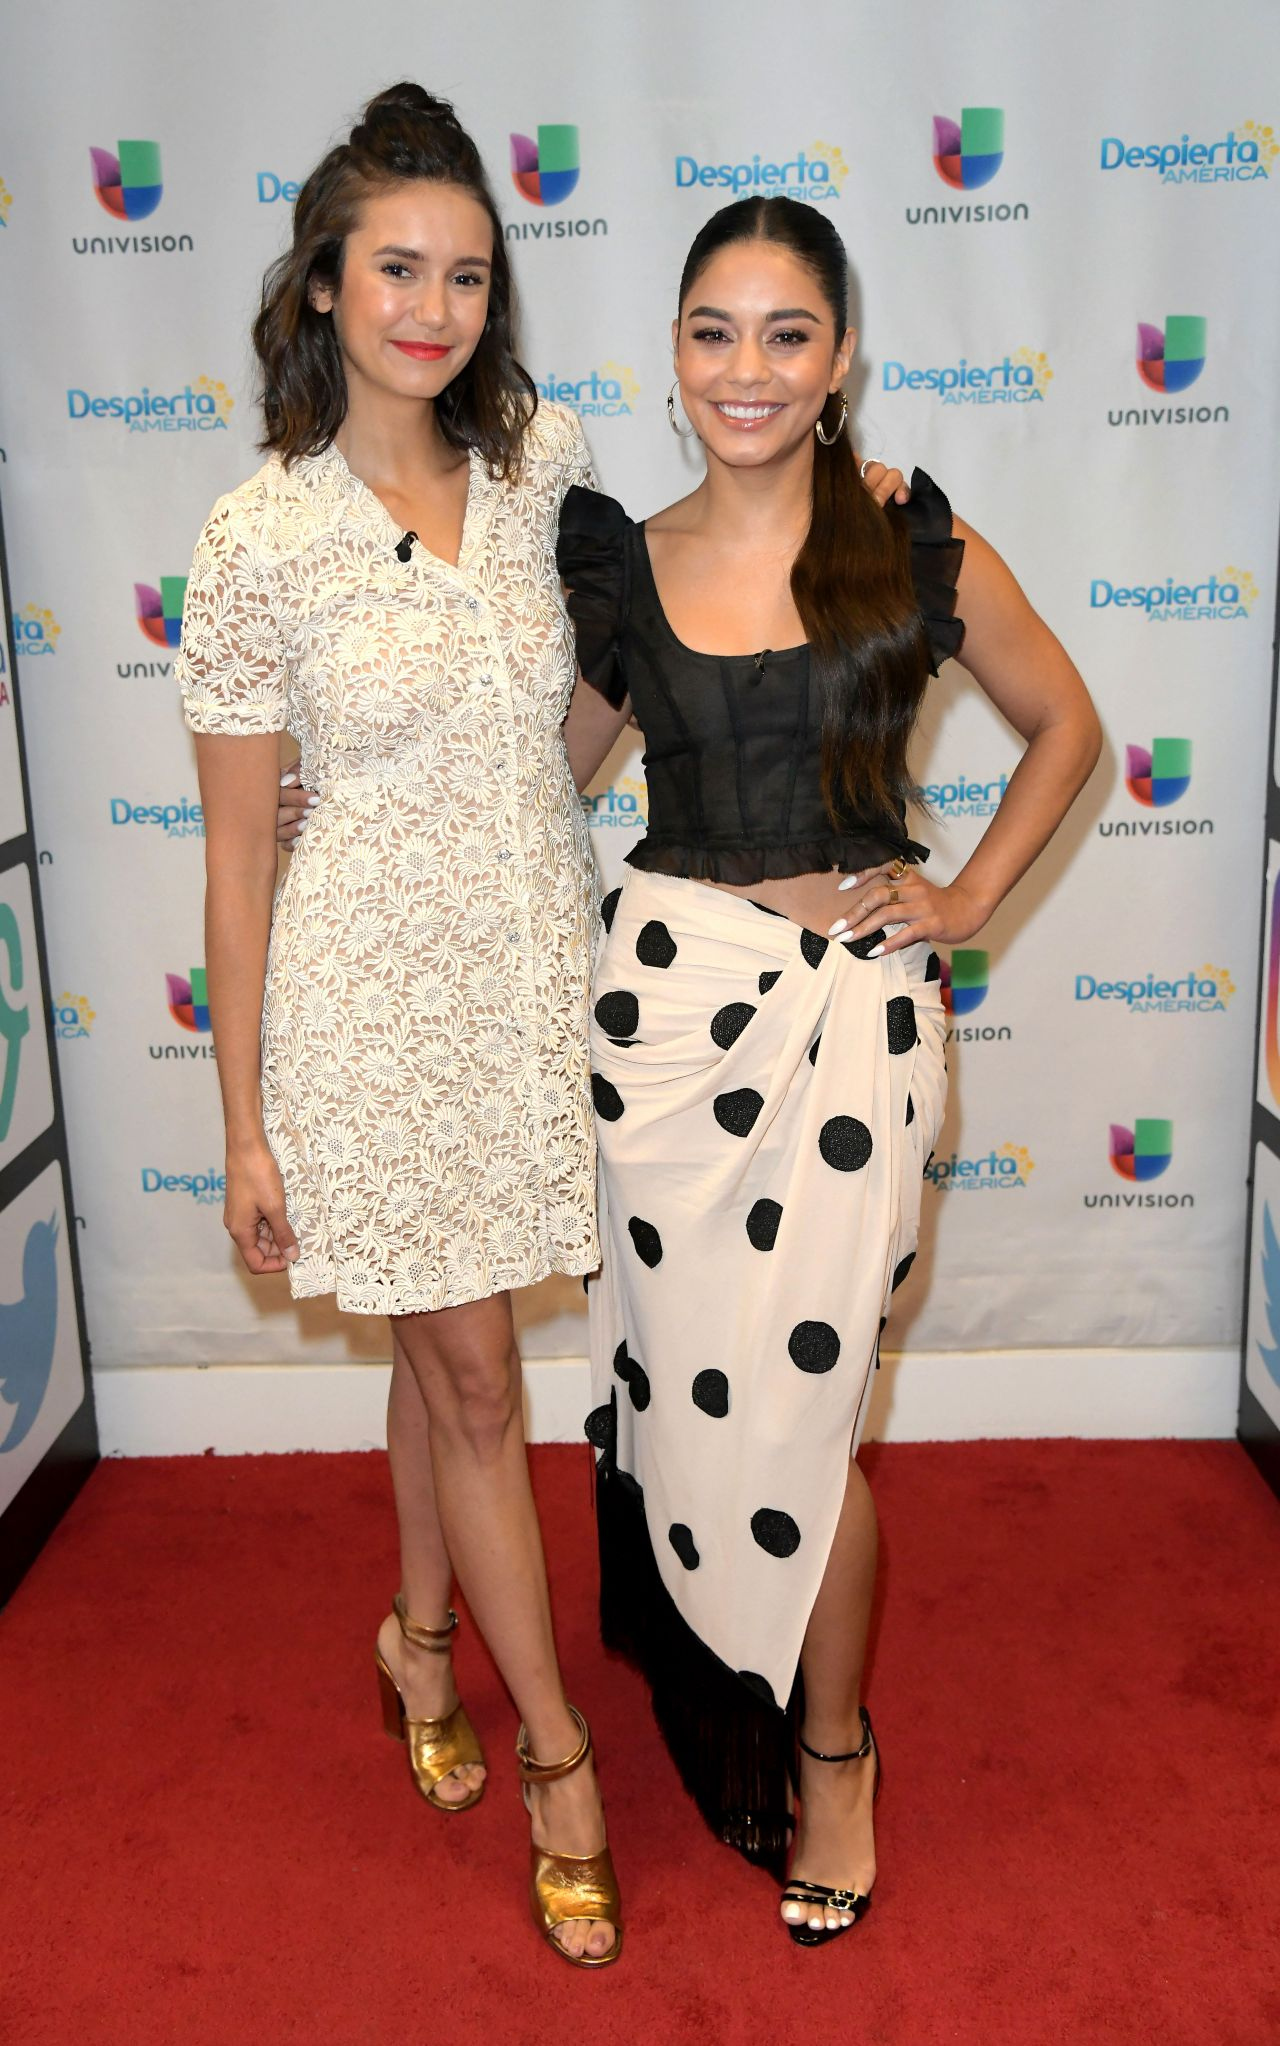 https://celebmafia.com/wp-content/uploads/2018/08/nina-dobrev-and-vanessa-hudgens-despierta-america-in-miami-08-02-2018-15.jpg